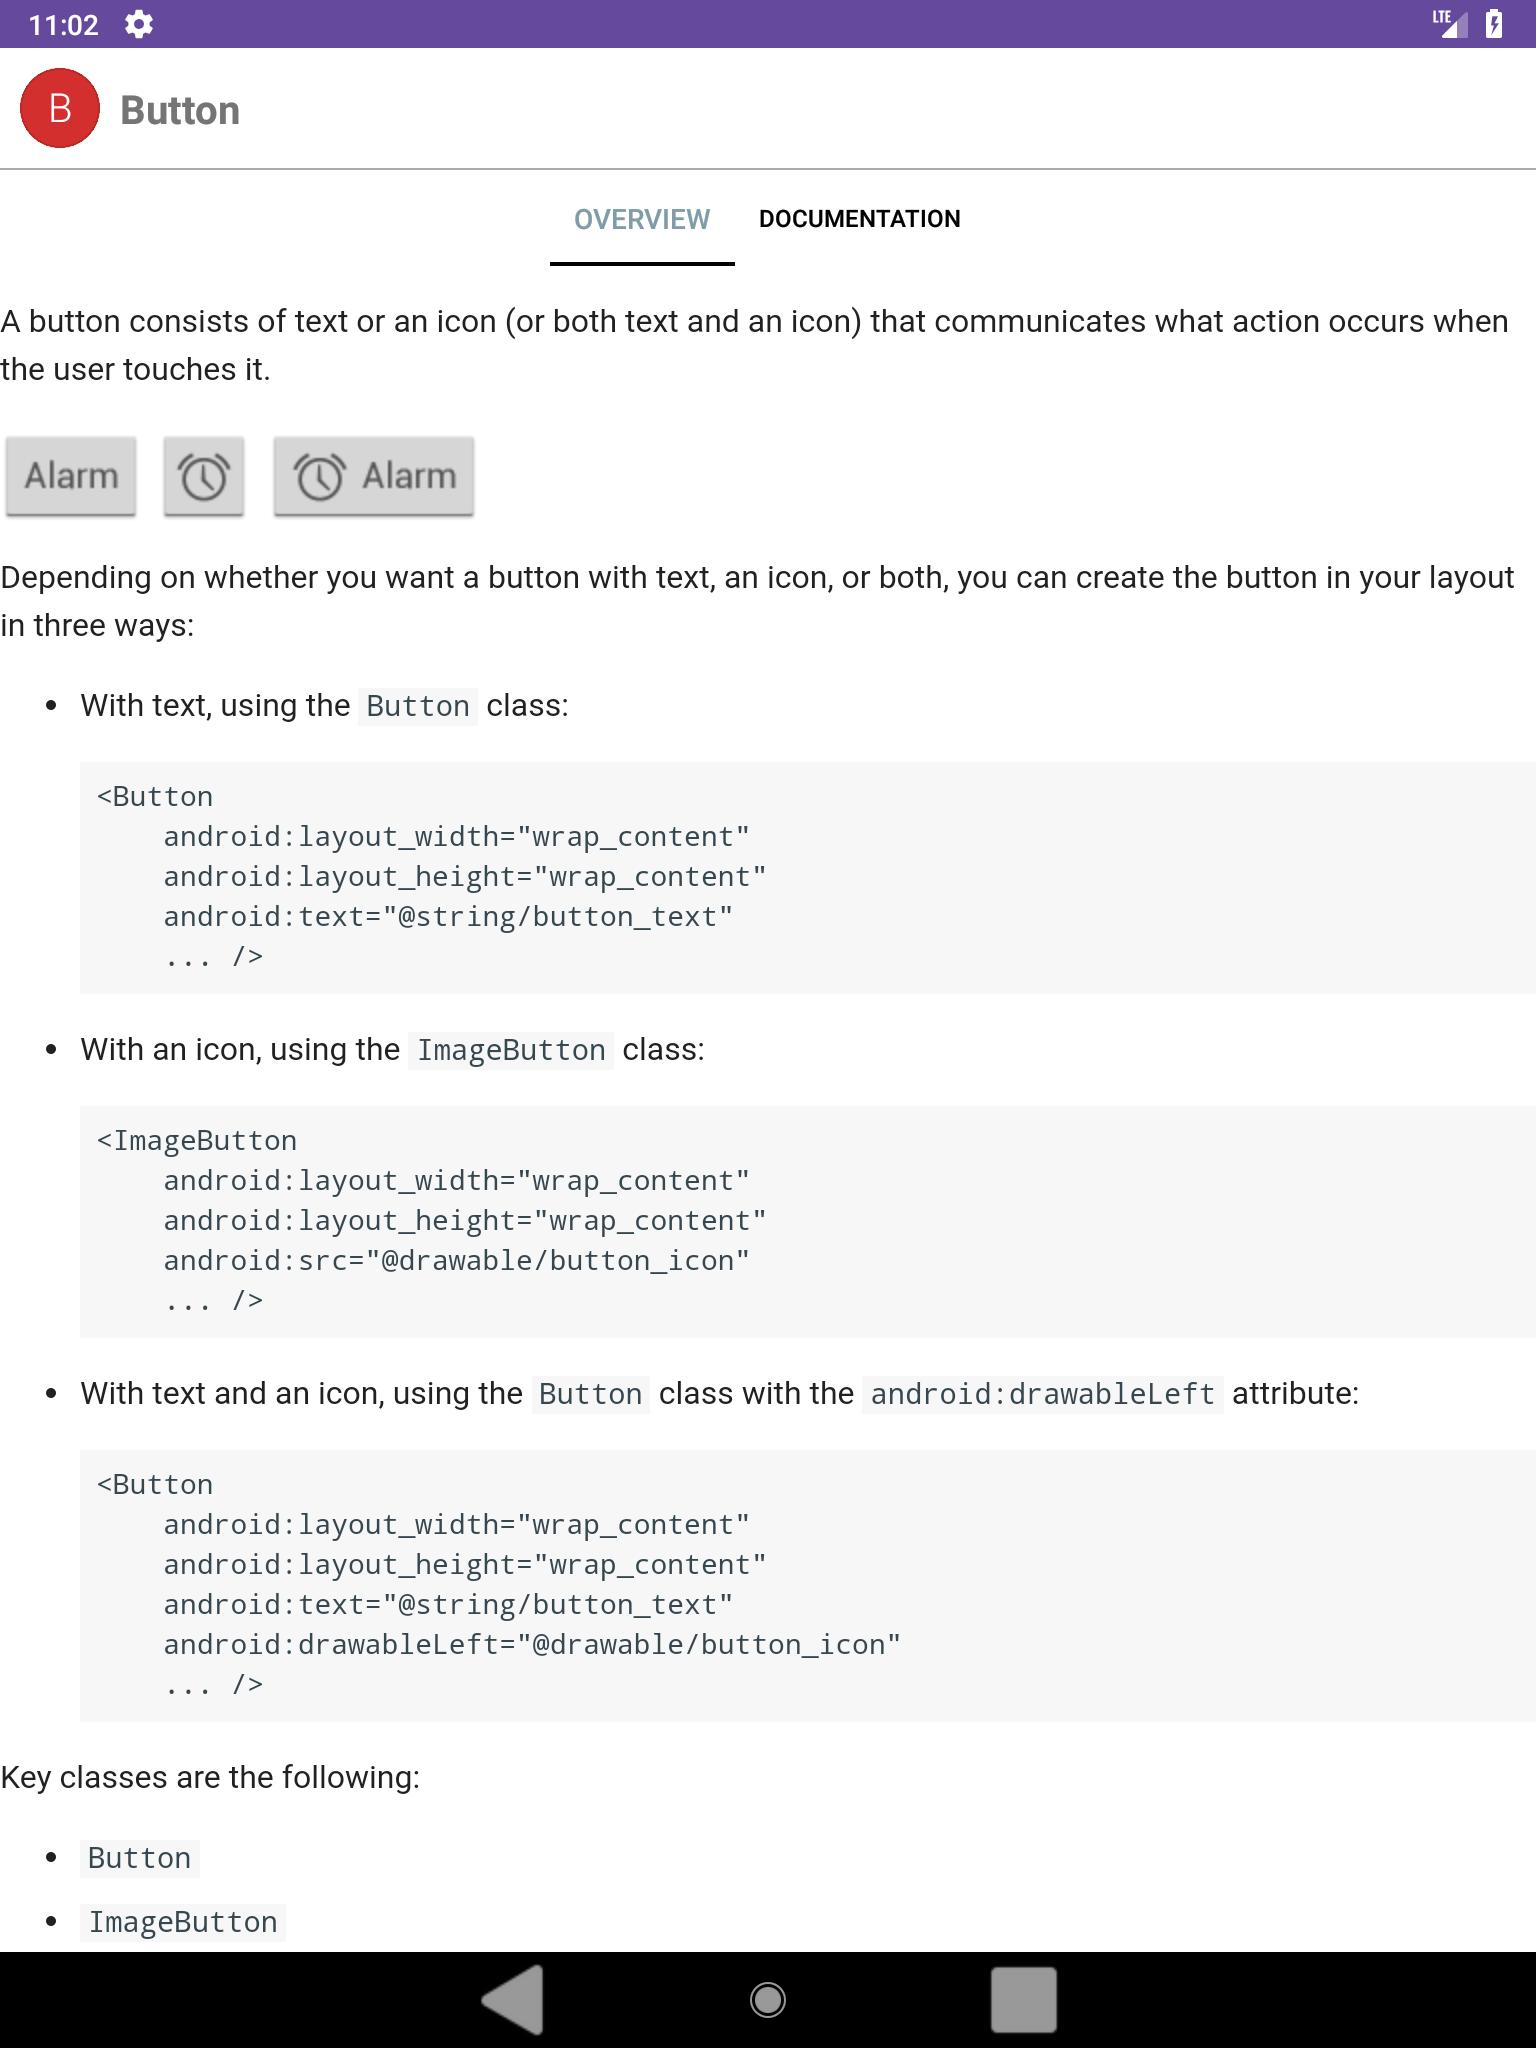 Learn Android (XML, Java, Kotlin) for Android - APK Download